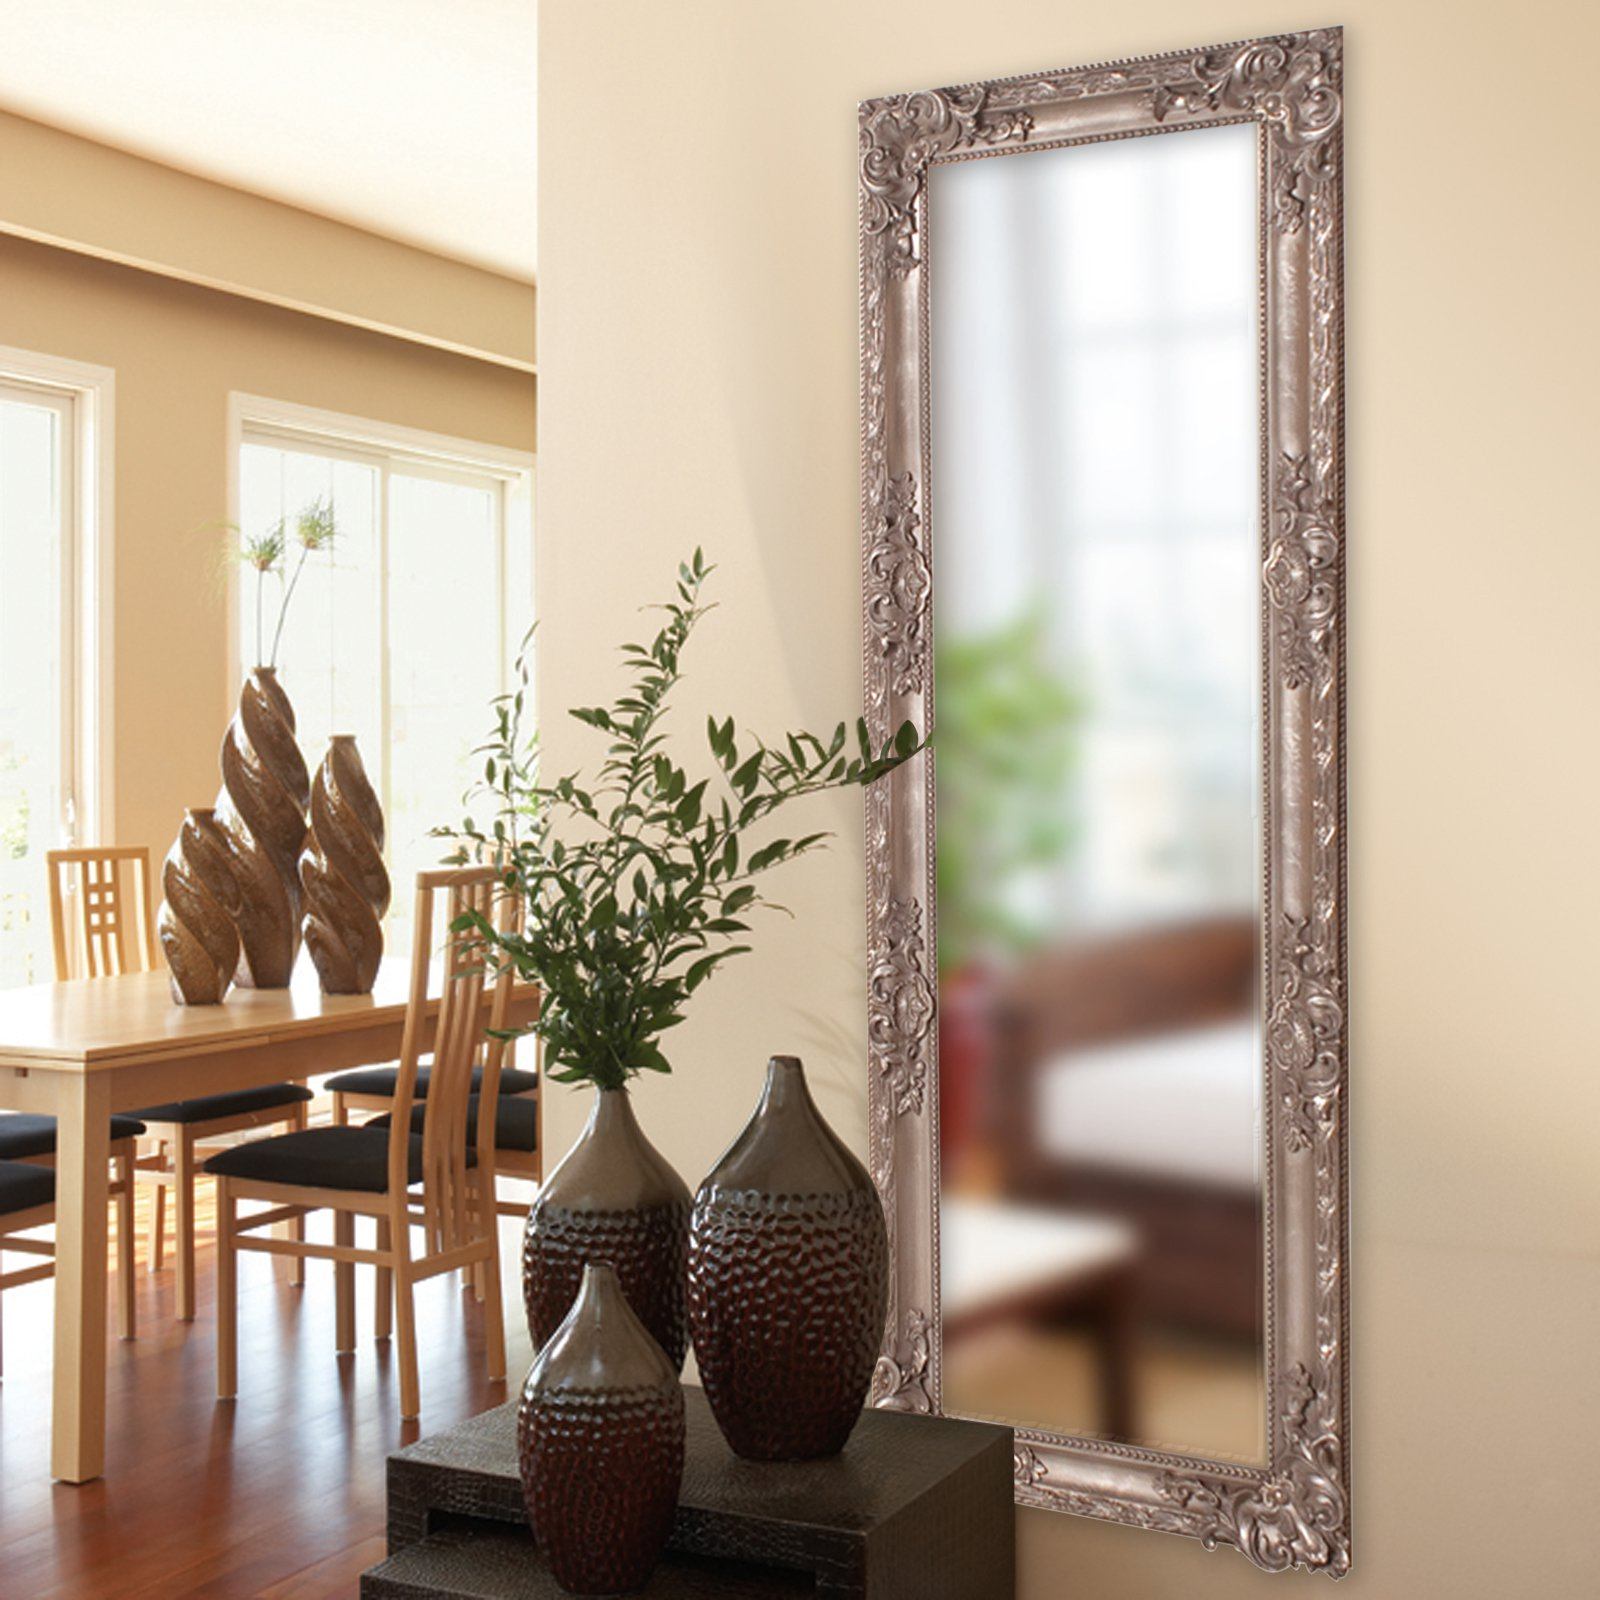 Popular Belham Living Carlos Full Length Wall Mirror – 23W X 62H In (View 10 of 20)